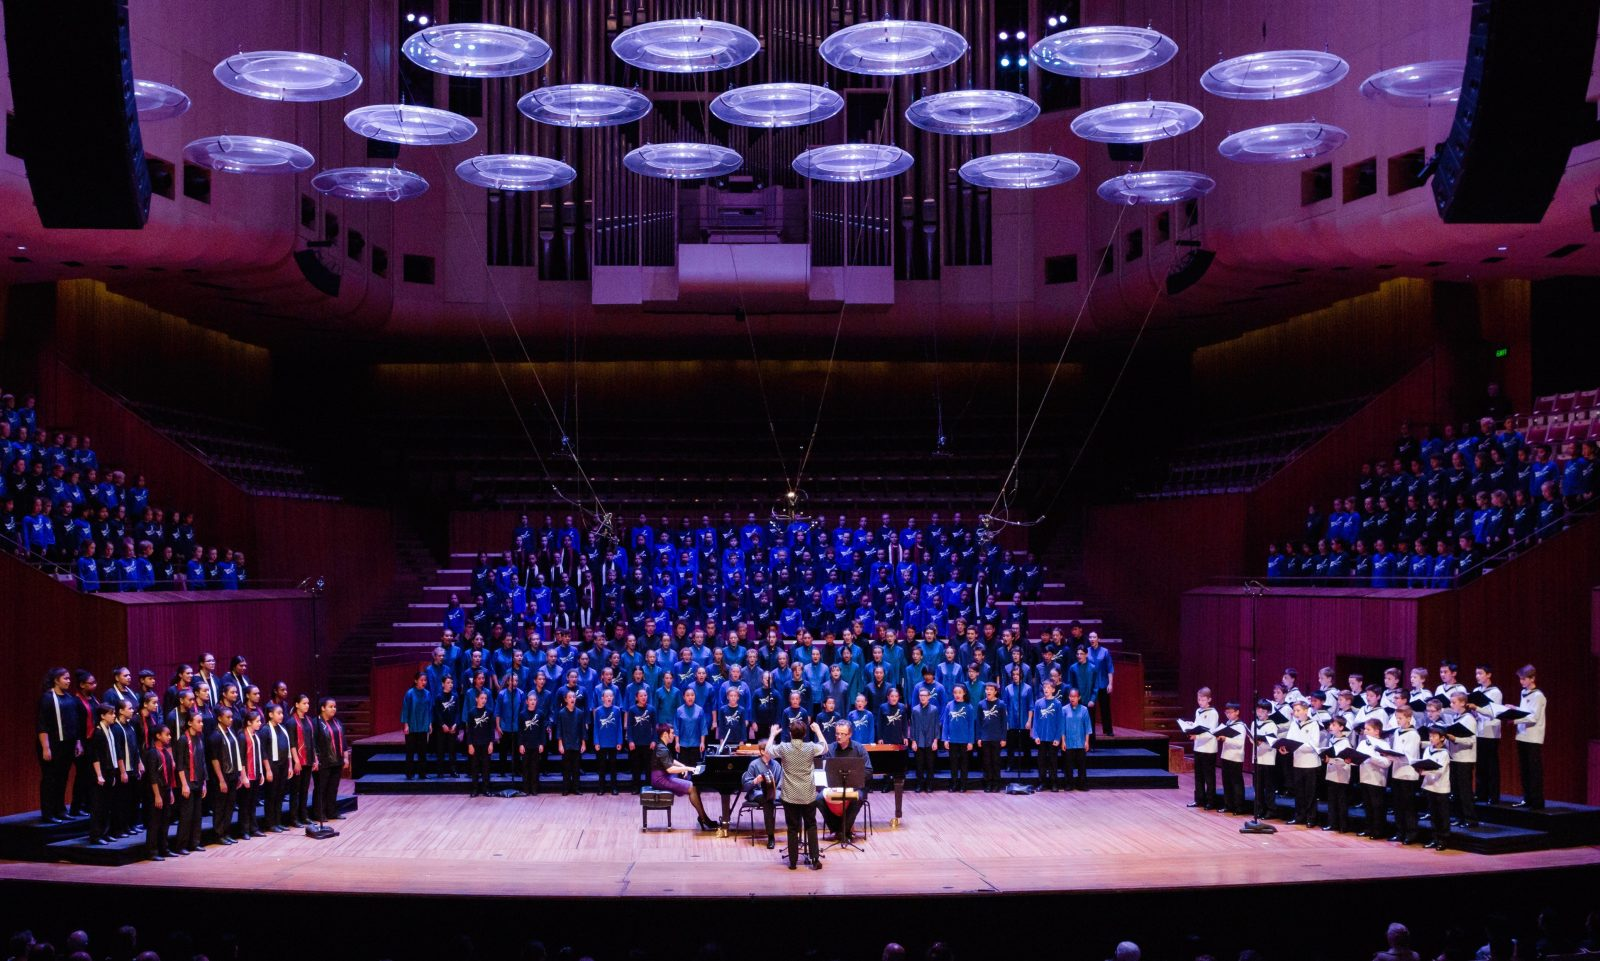 Sydney Children's Choir singing at the Sydney Opera House